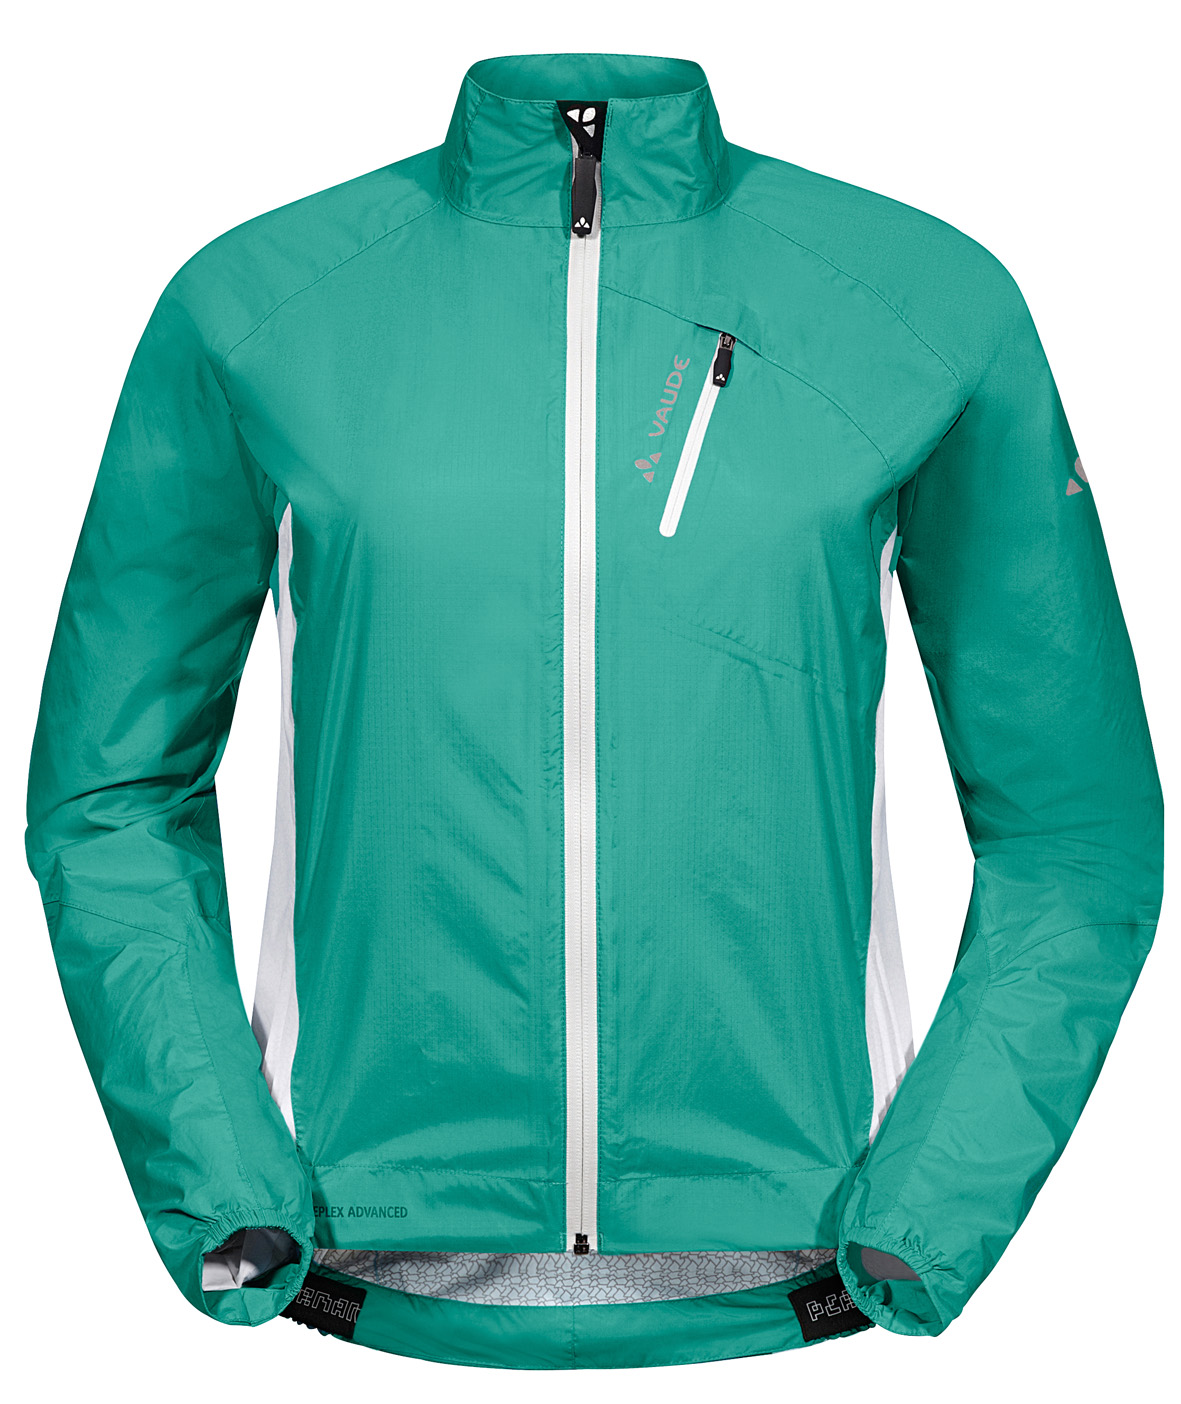 VAUDE Women´s Spray Jacket IV lotus green Größe 36 - schneider-sports